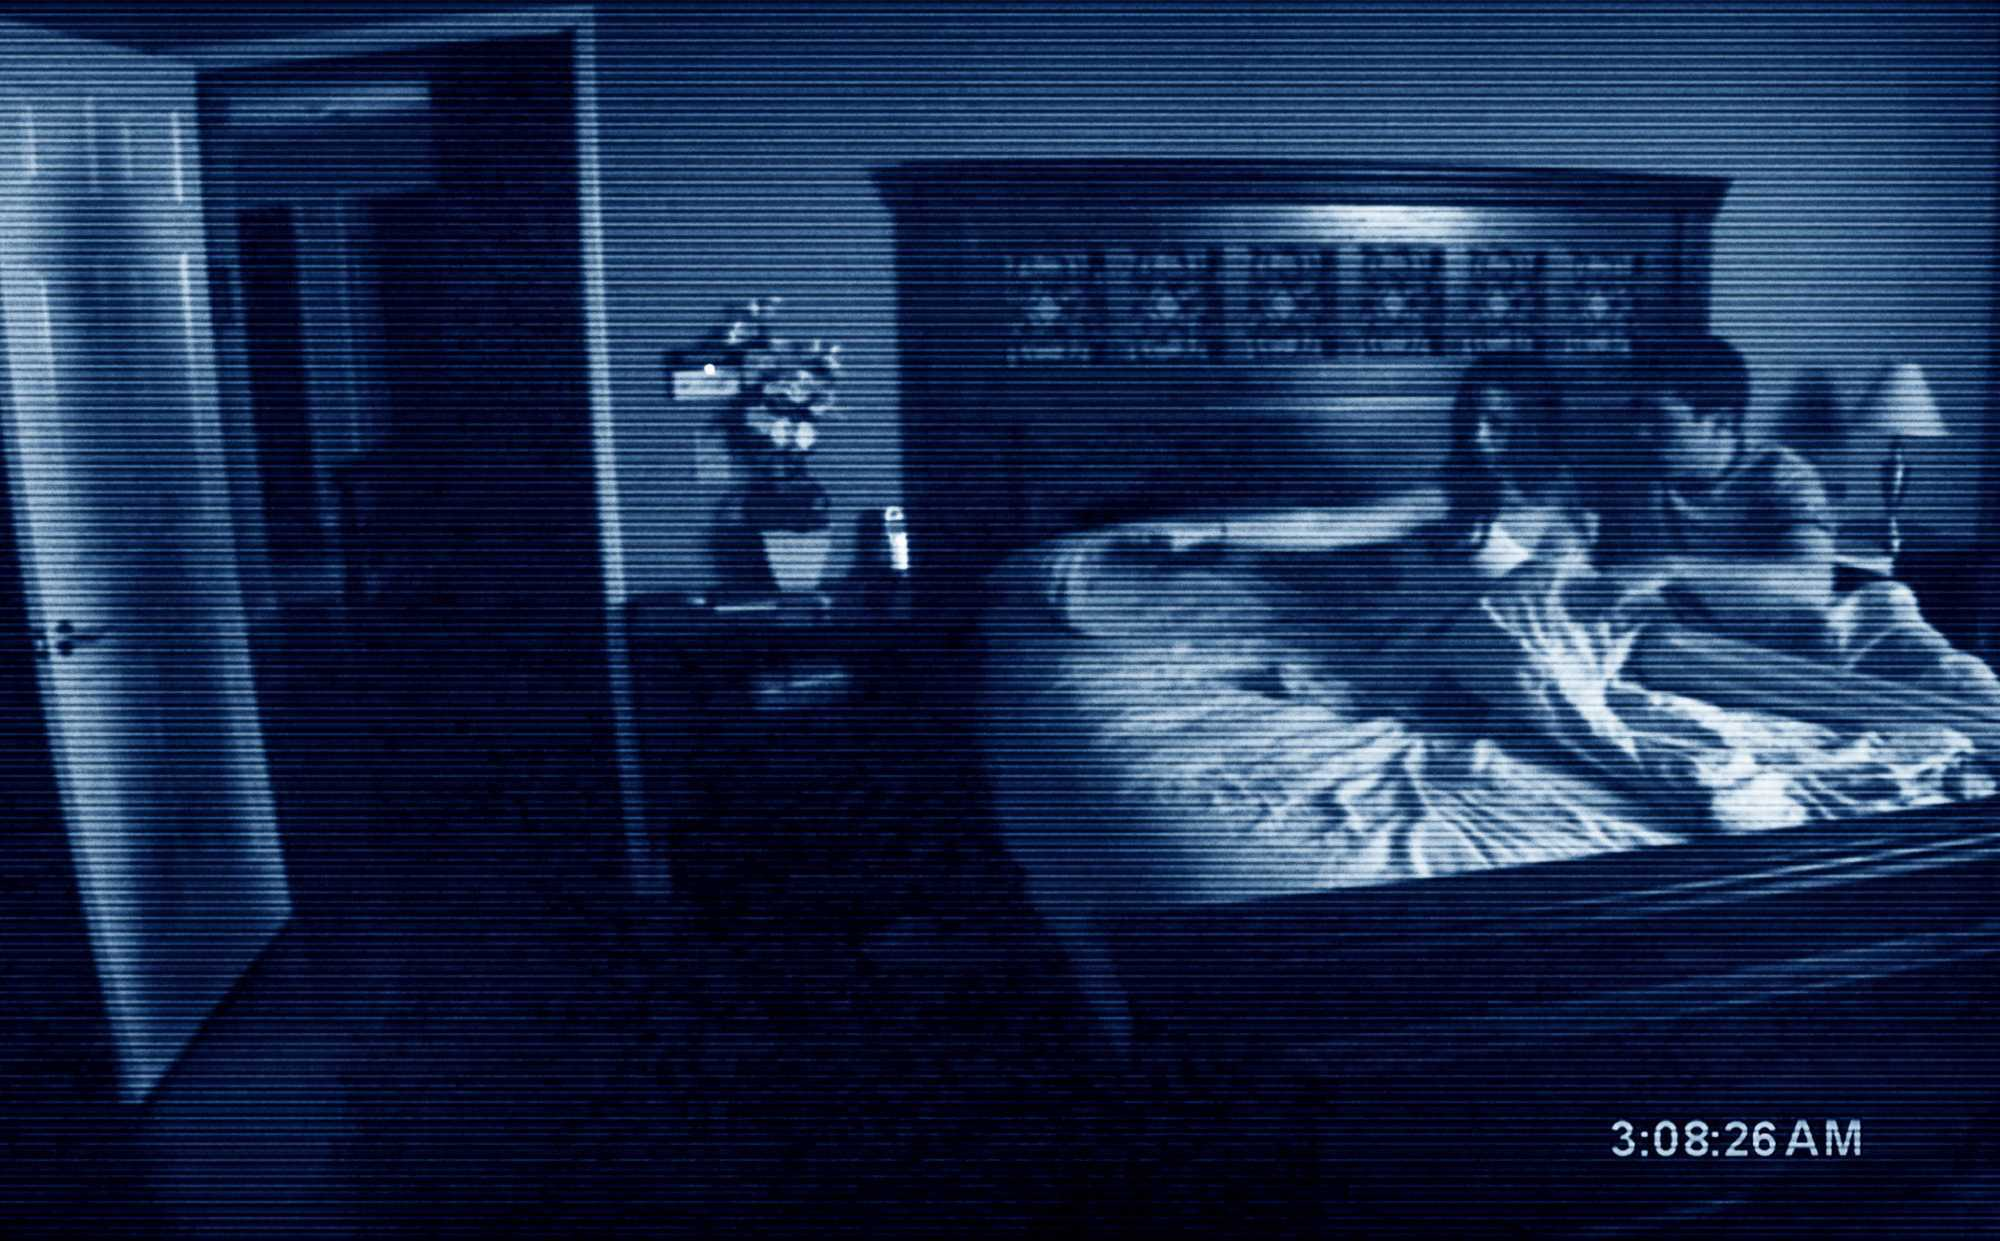 Paranormal-Activity-5-the-ghost-dimension